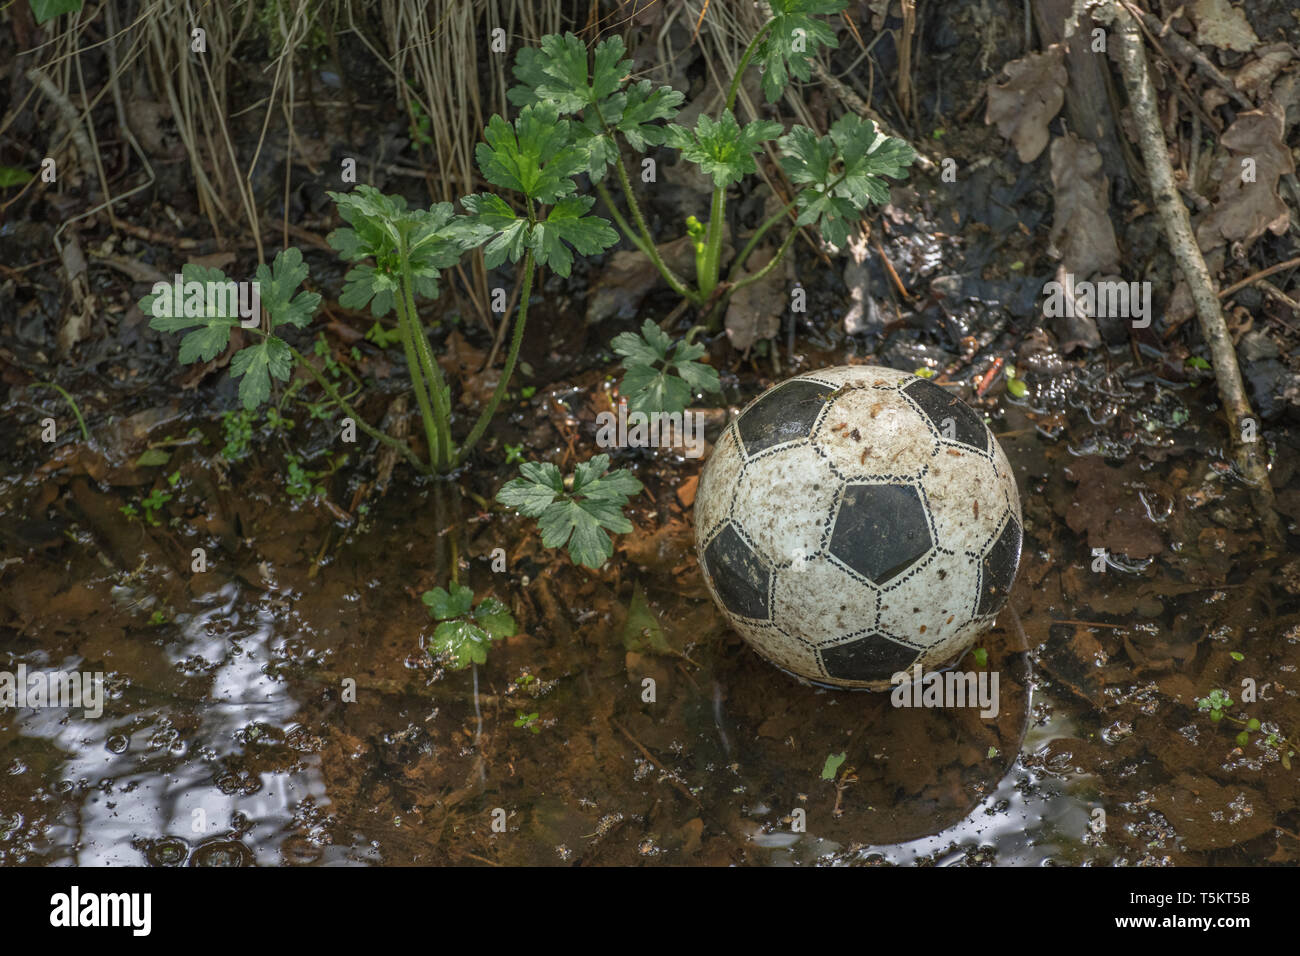 Slightly deflated plastic football lost in a drainage ditch. Missing ball, lost football. In among the weeds metaphor, game abandoned. Stock Photo